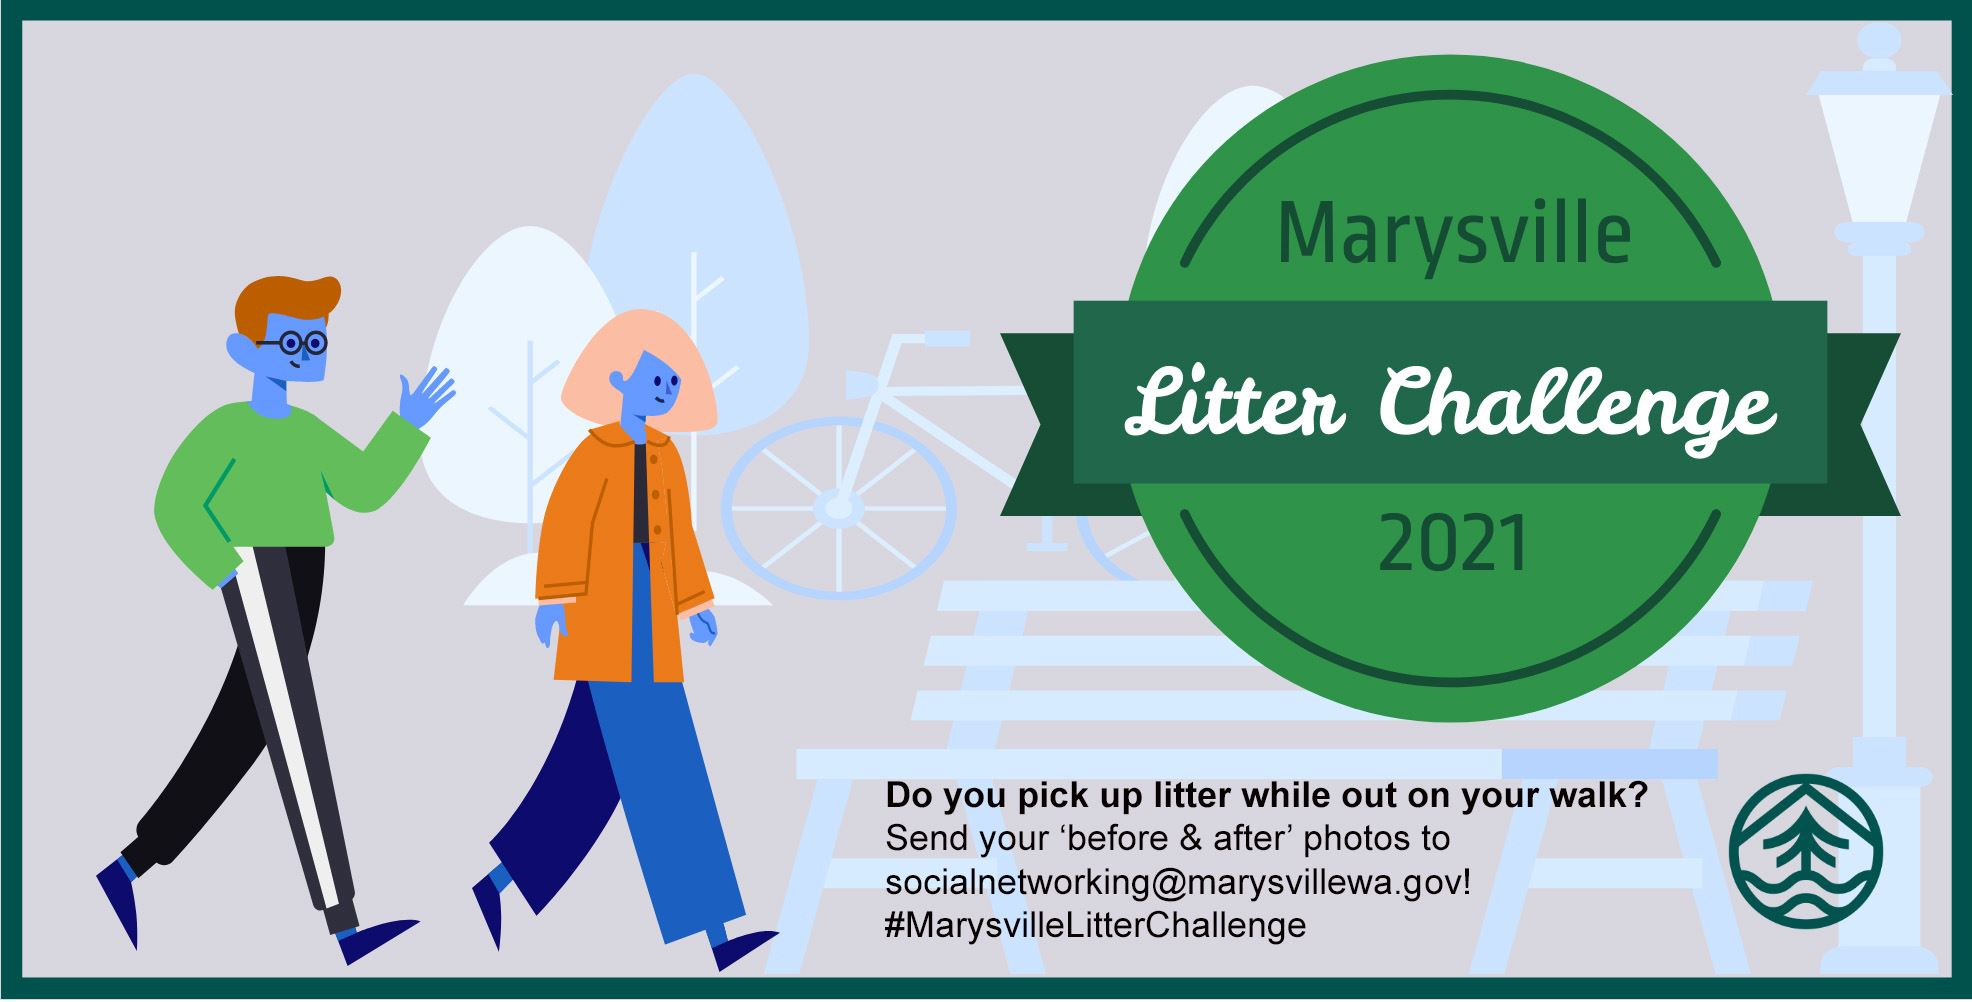 Litter Challenge: Send before & after photos to socialnetworking@marysvillewa.gov